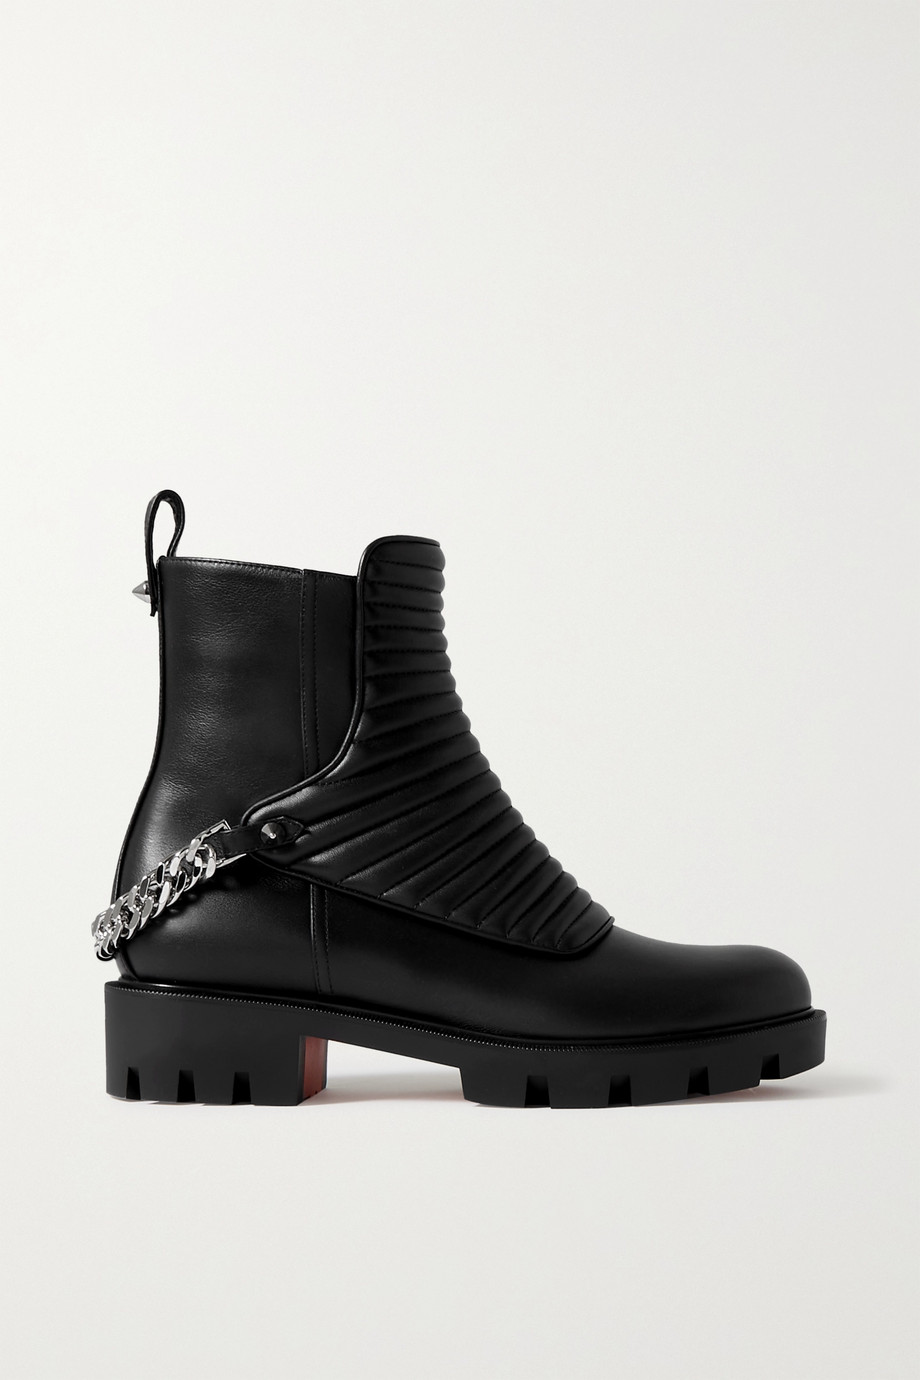 Christian Louboutin Maddic Max chain-embellished quilted leather ankle boots